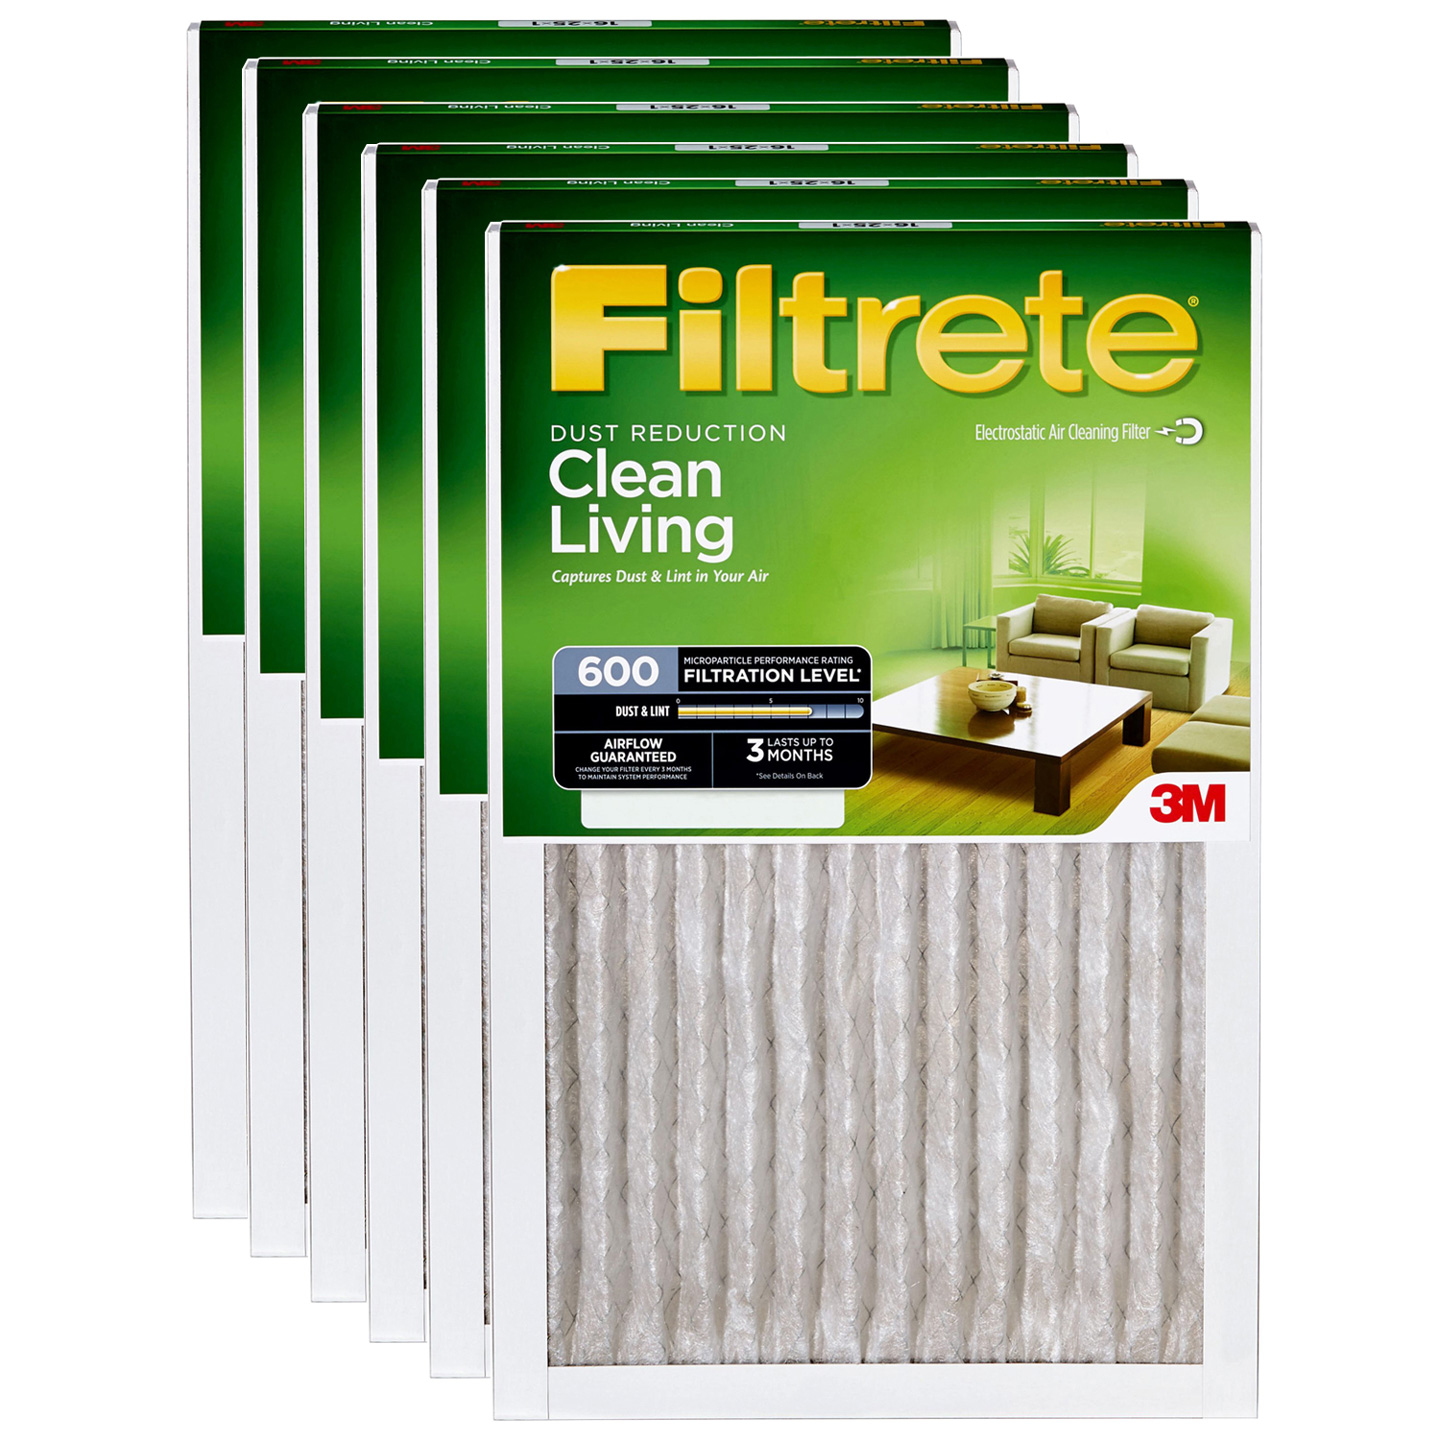 Filtrete 600 Dust Reduction Clean Living Filter - 20x30x1 (6-Pack) FILTRETE_DUST_20x30x1_6_PACK